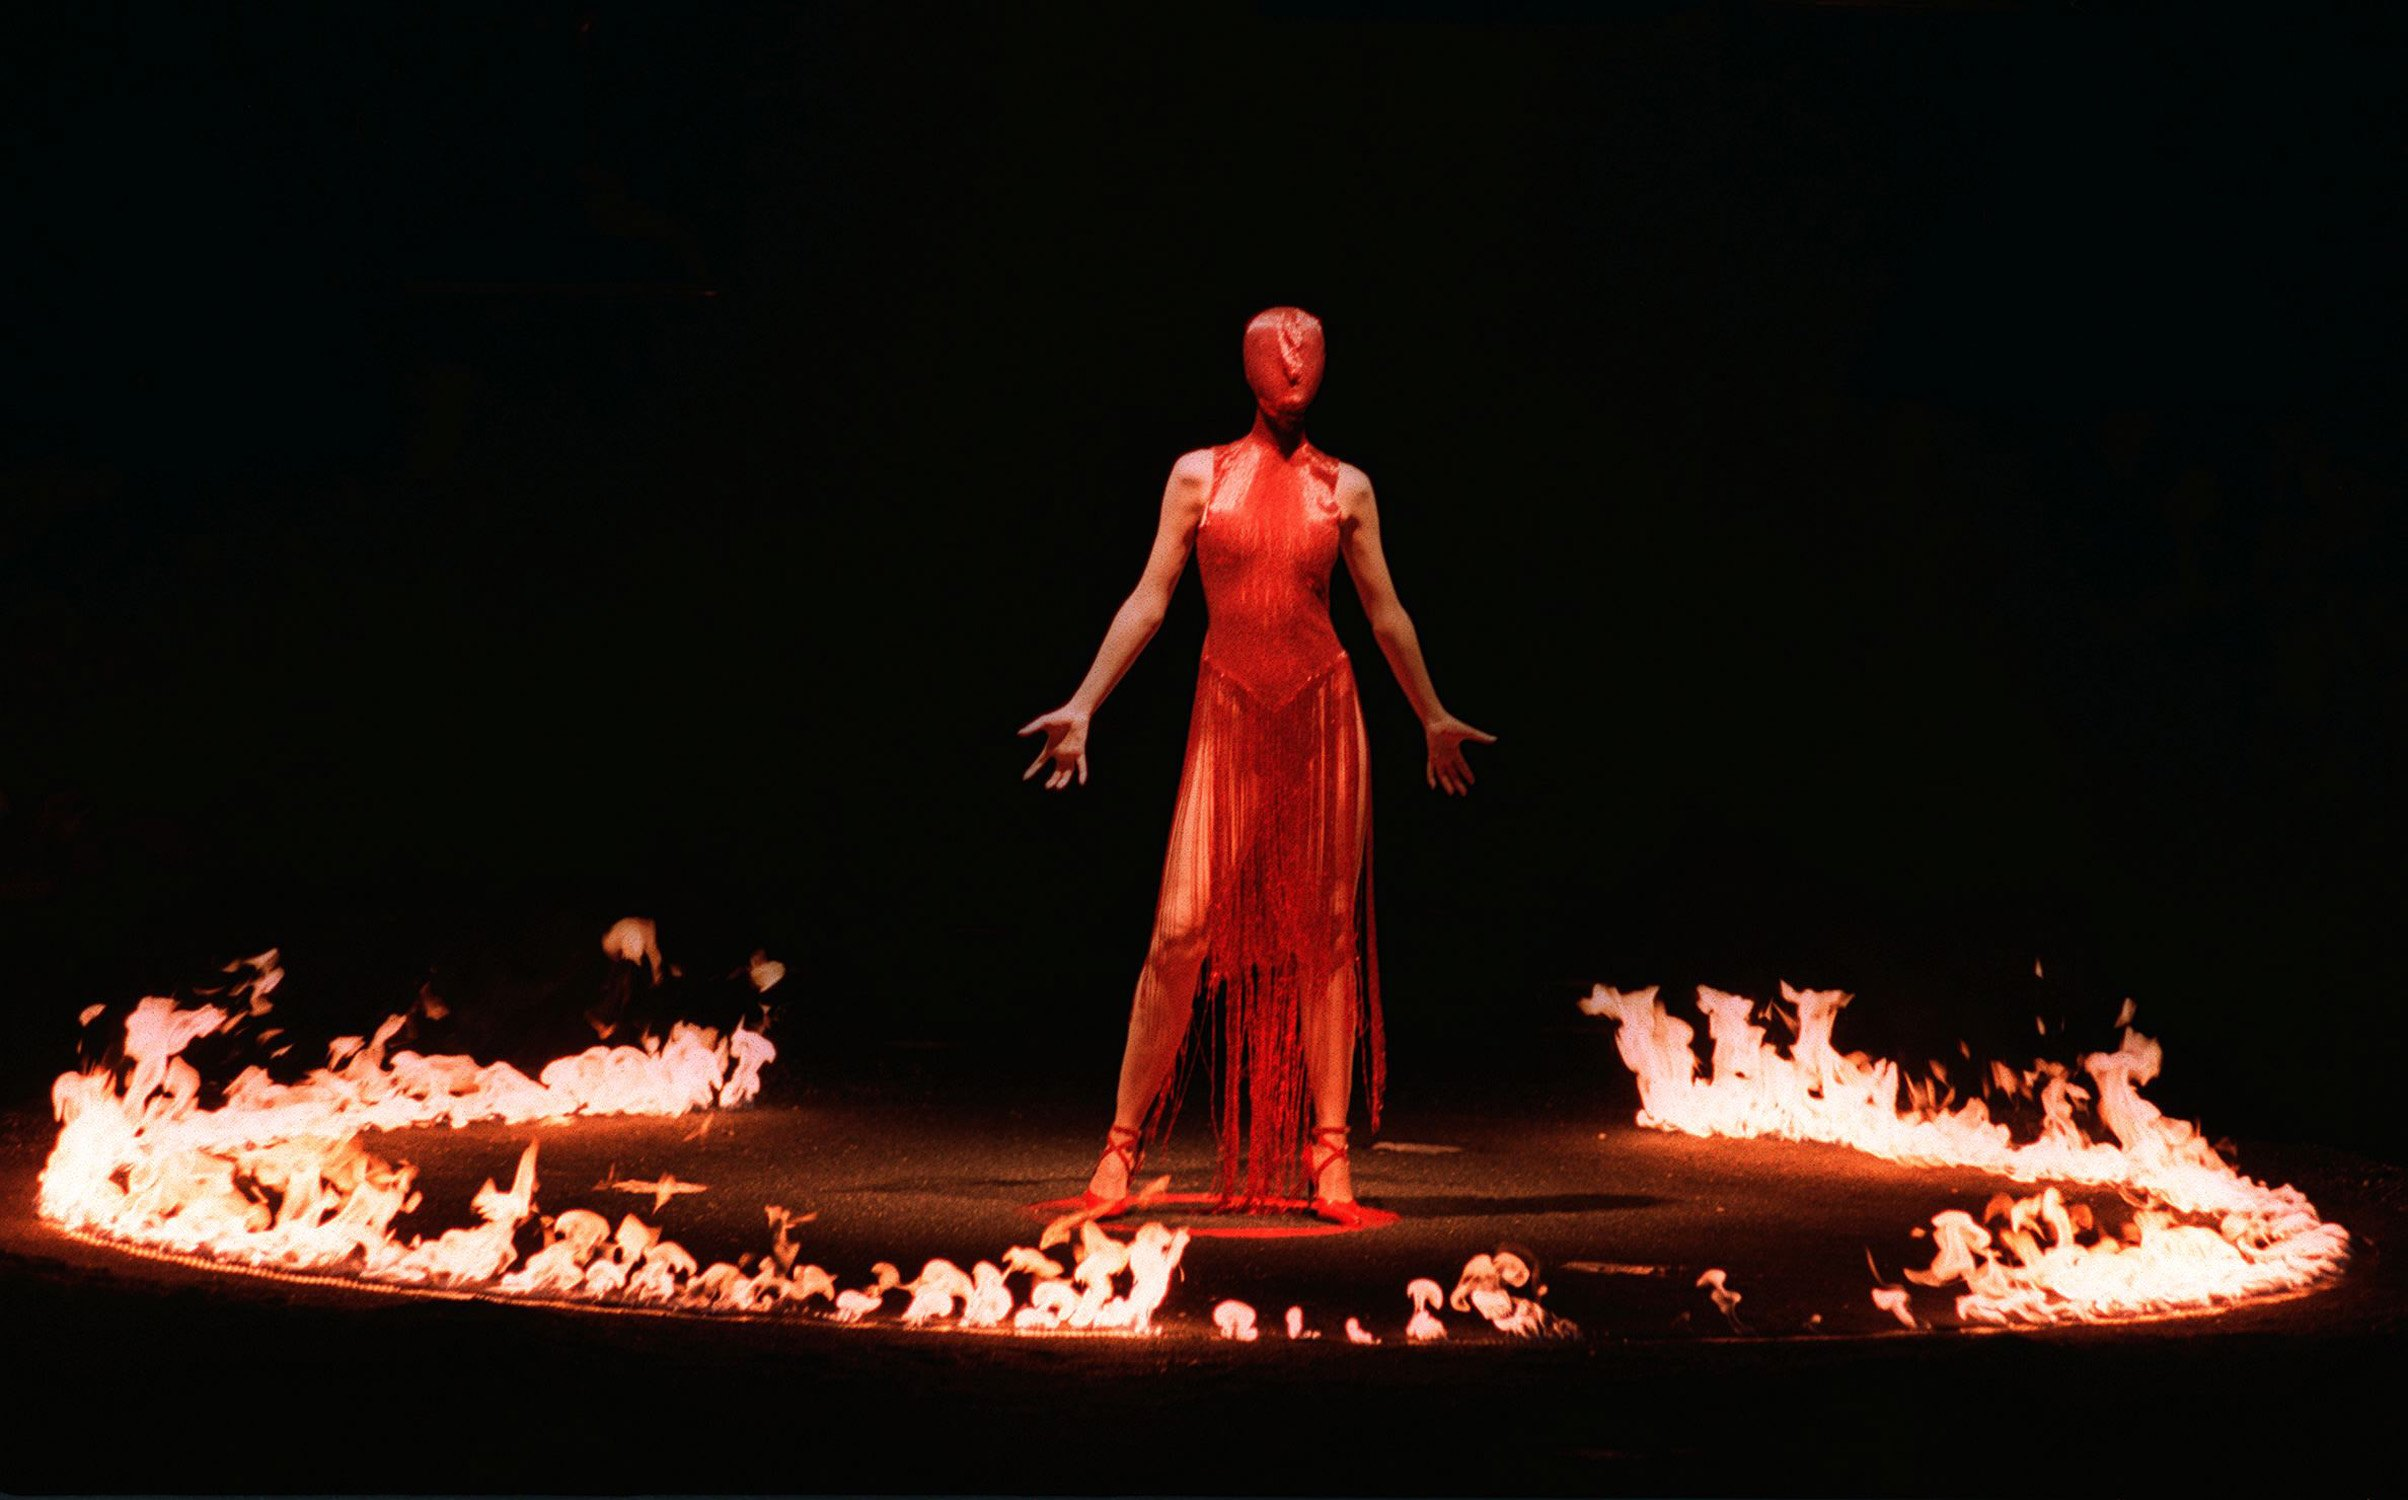 A model wearing a red hooded cat suit, stands among a ring of fire during the finale of British designer Alexander McQueen's autumn/winter 1998/1999 fashion collection on the last day of London Fashion week. Photo by Paul Vicente/AFP/Getty Images